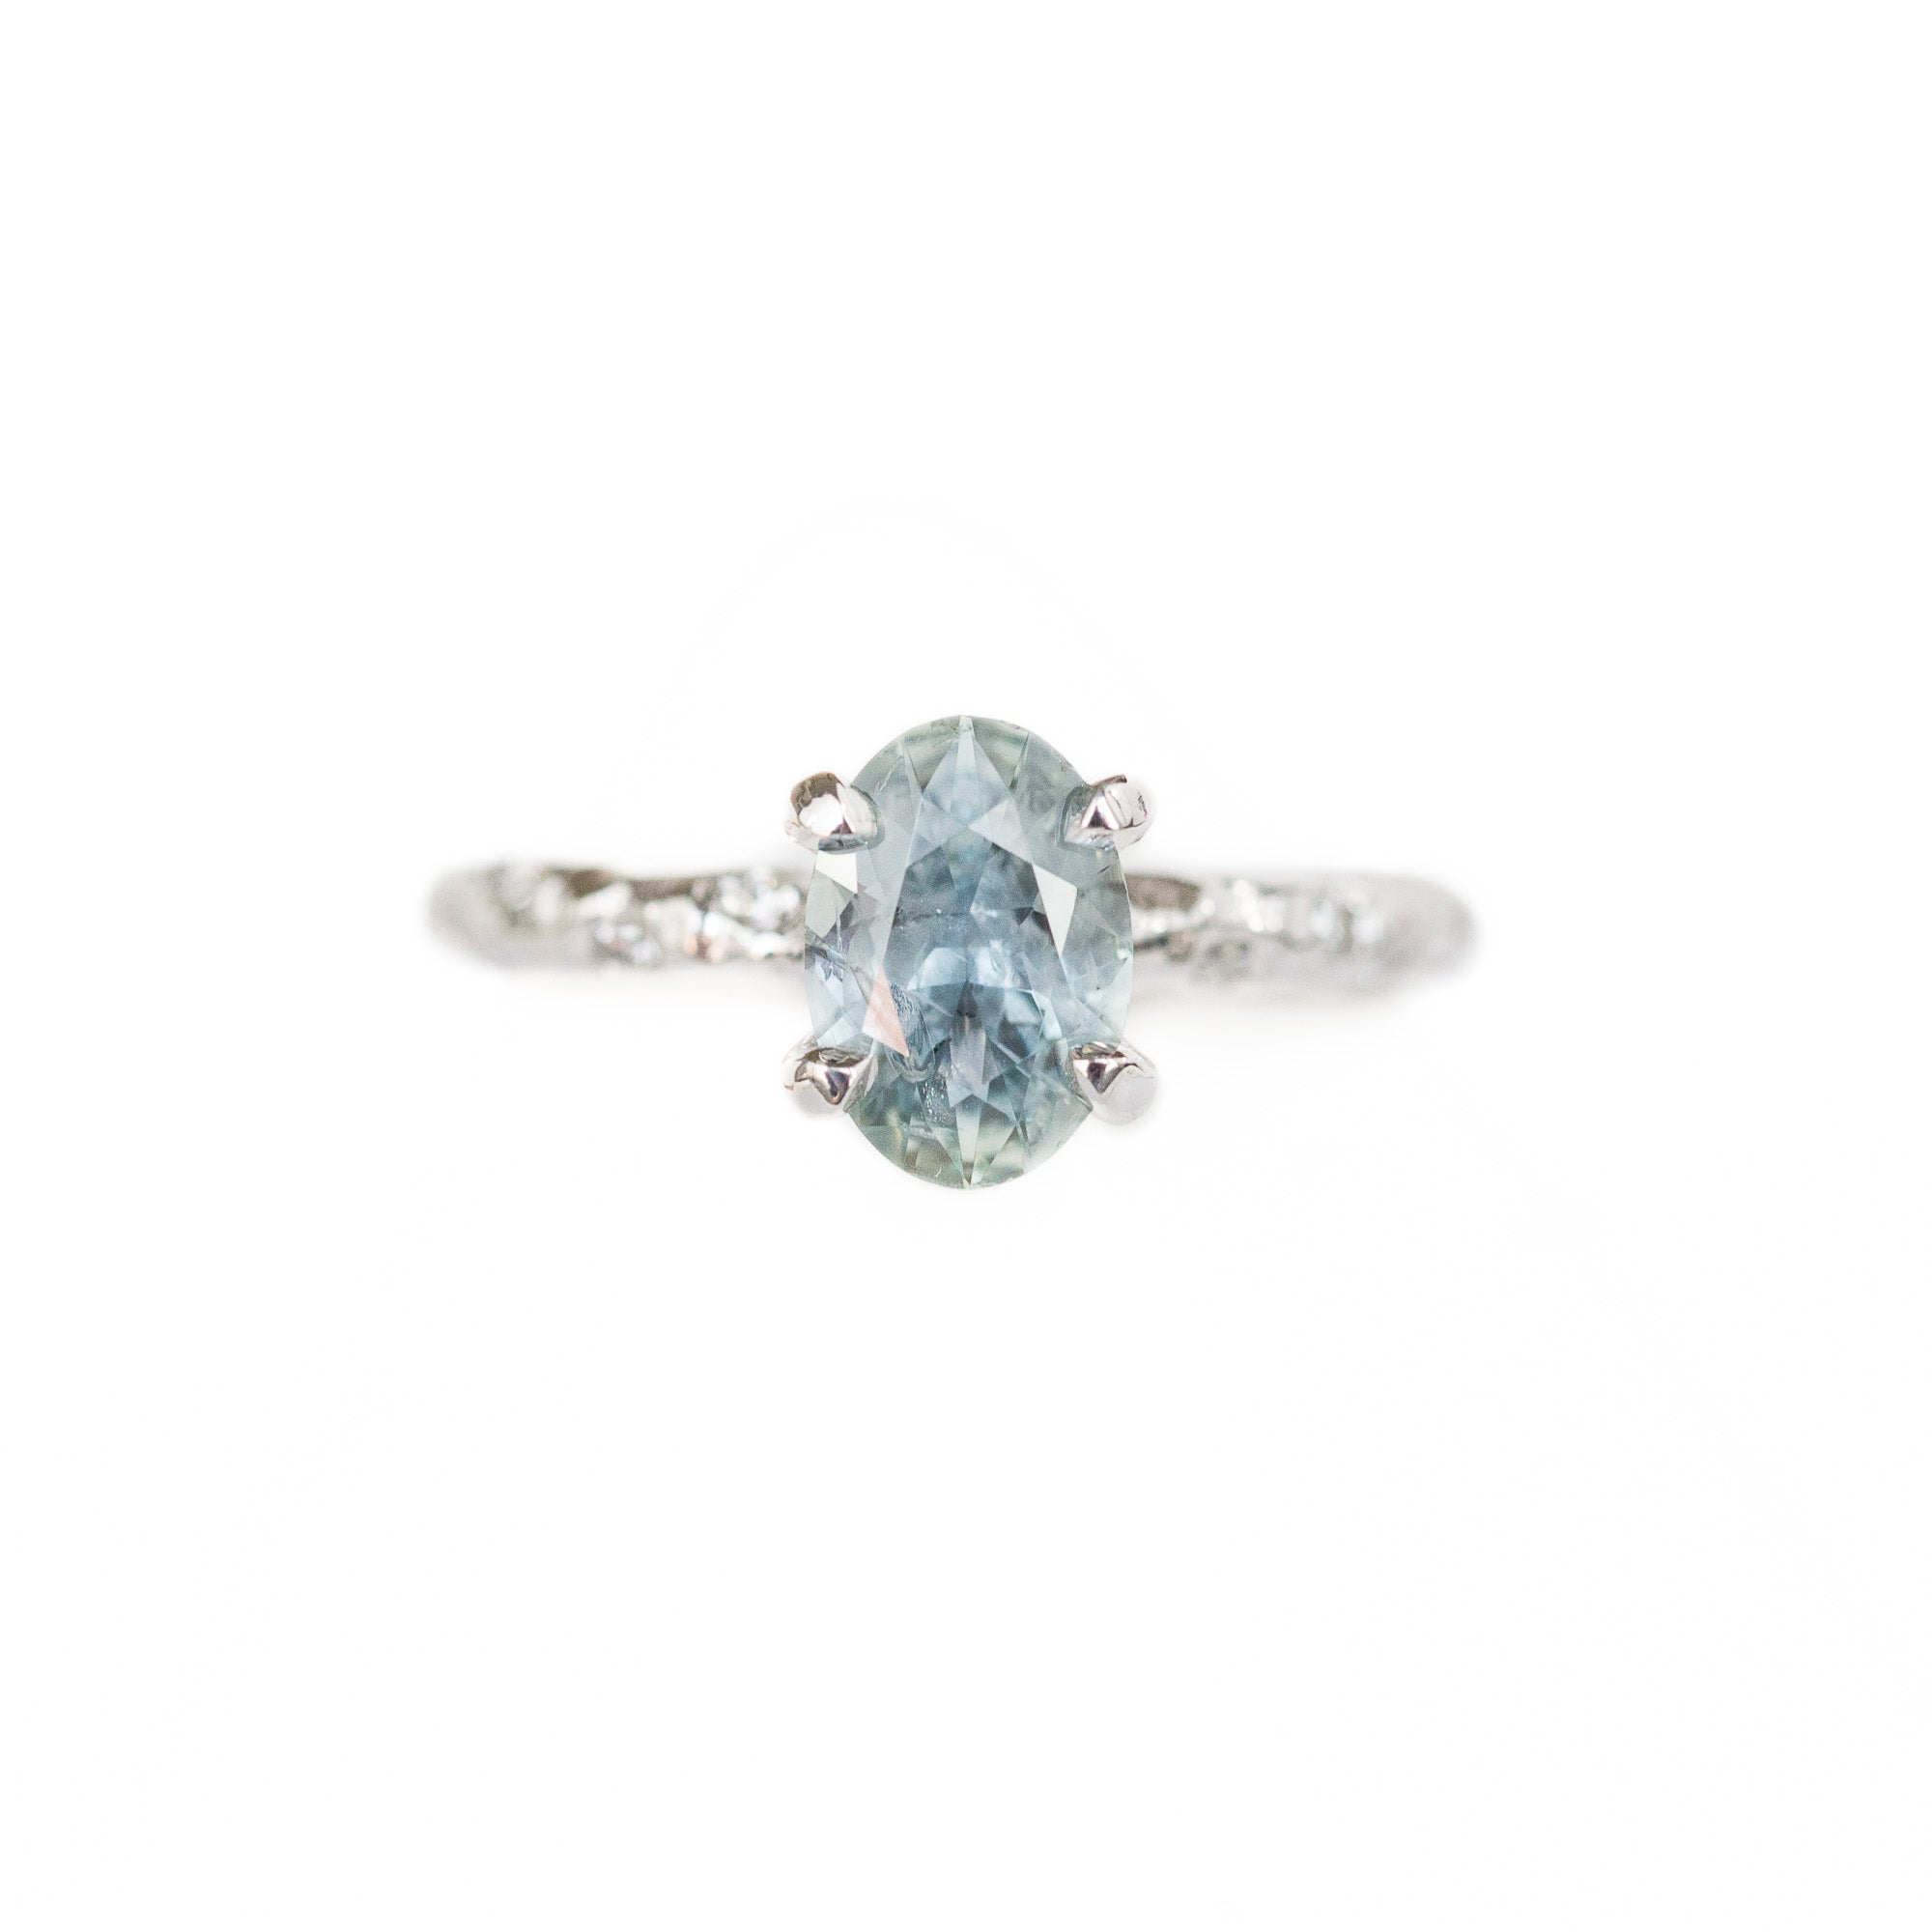 3a6d9ddc1 1.30ct Oval Icy Blue Montana Sapphire Ring with Embedded Diamonds in 14k  White Gold